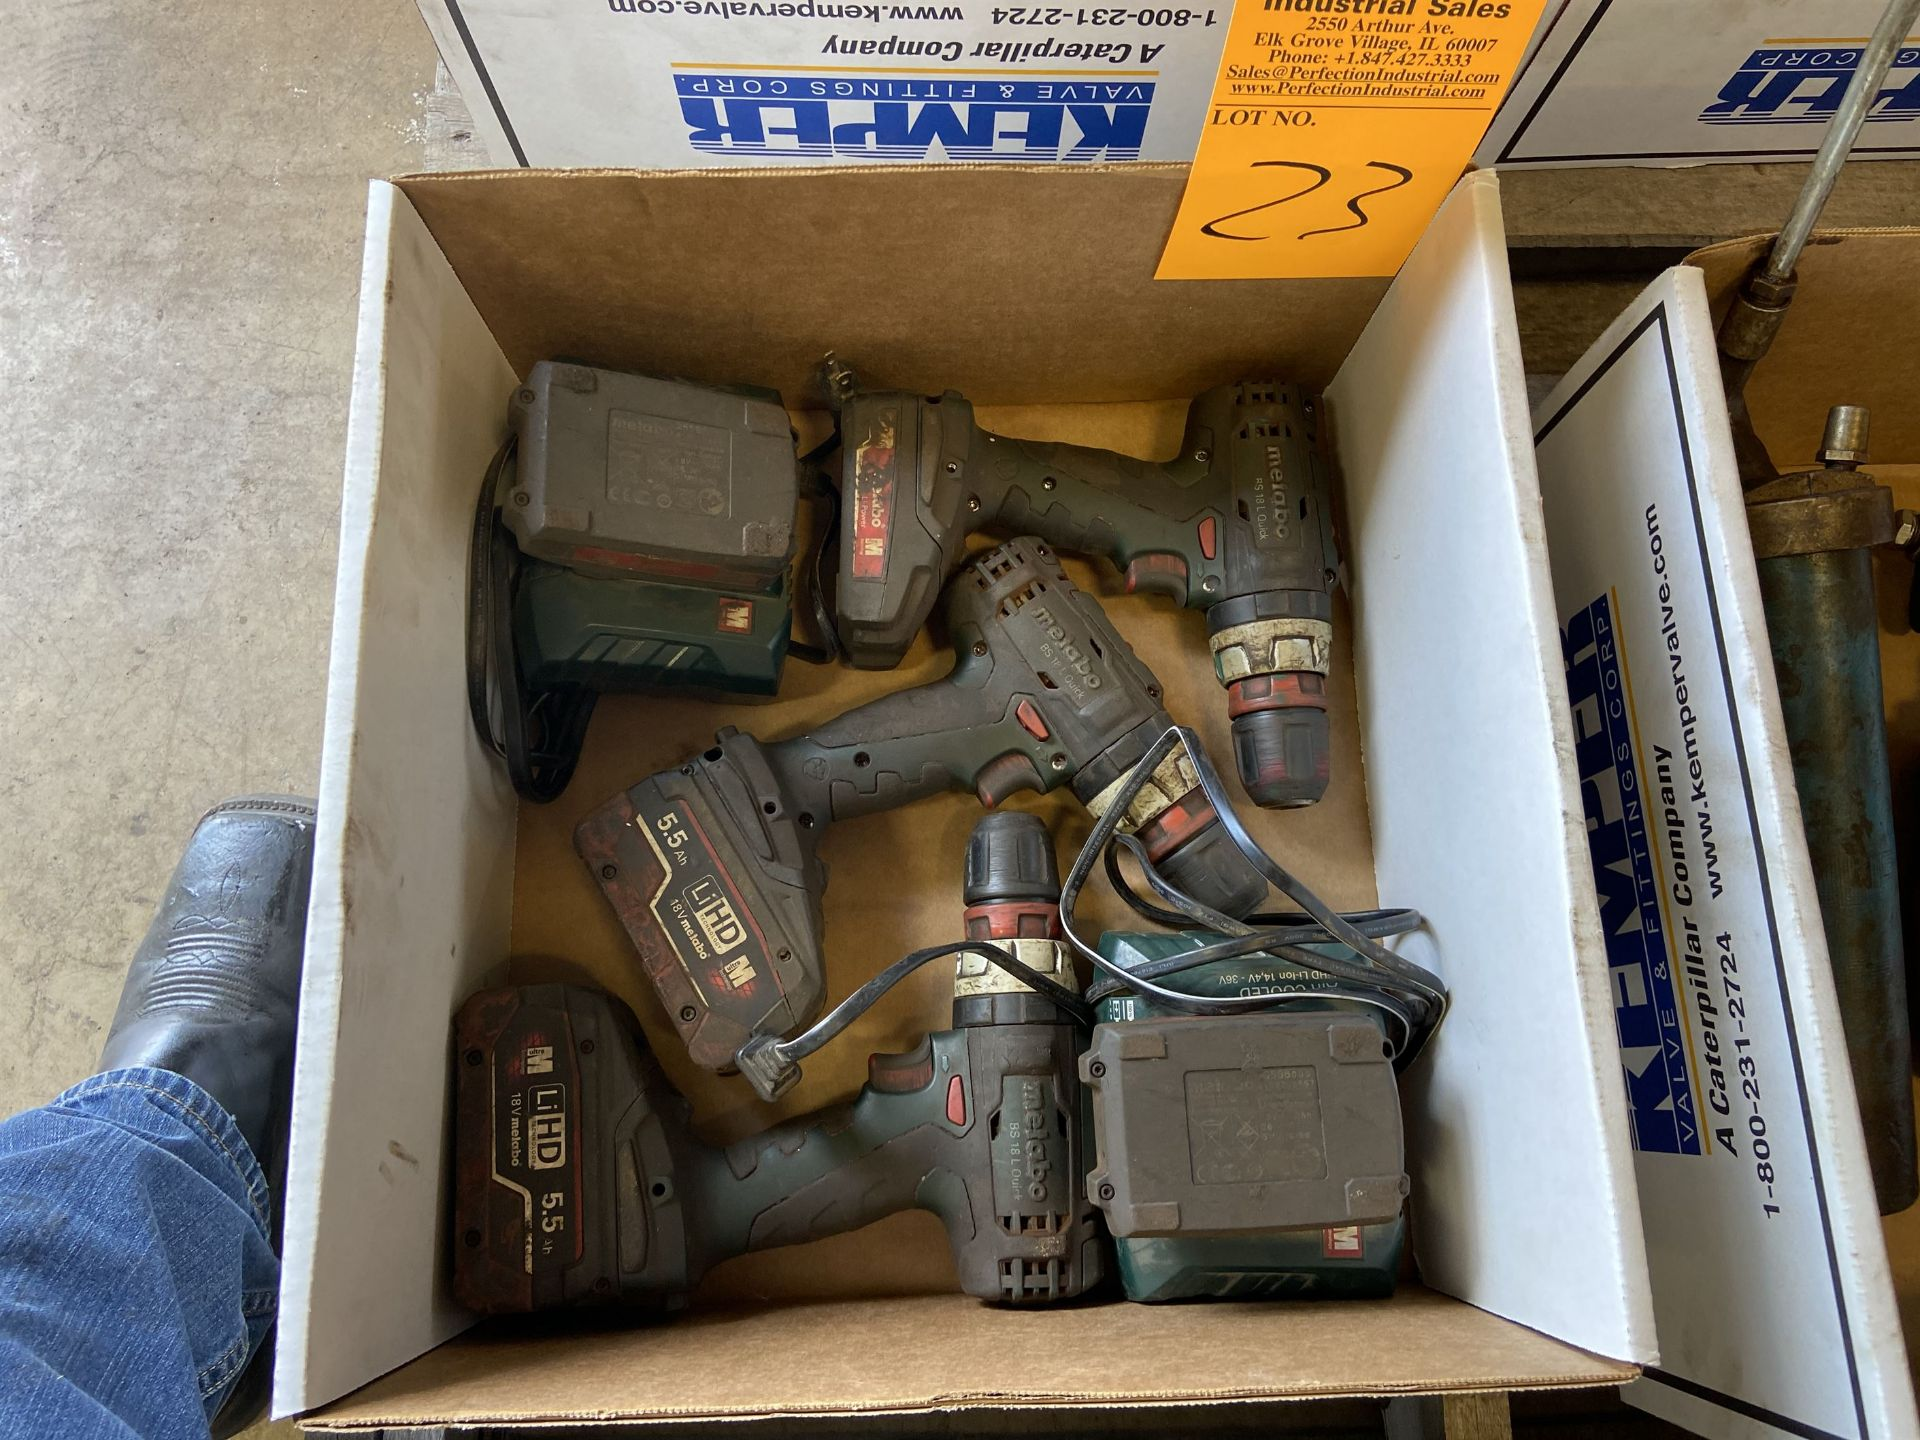 Lot of Metabo Cordless Drills plus Chargers